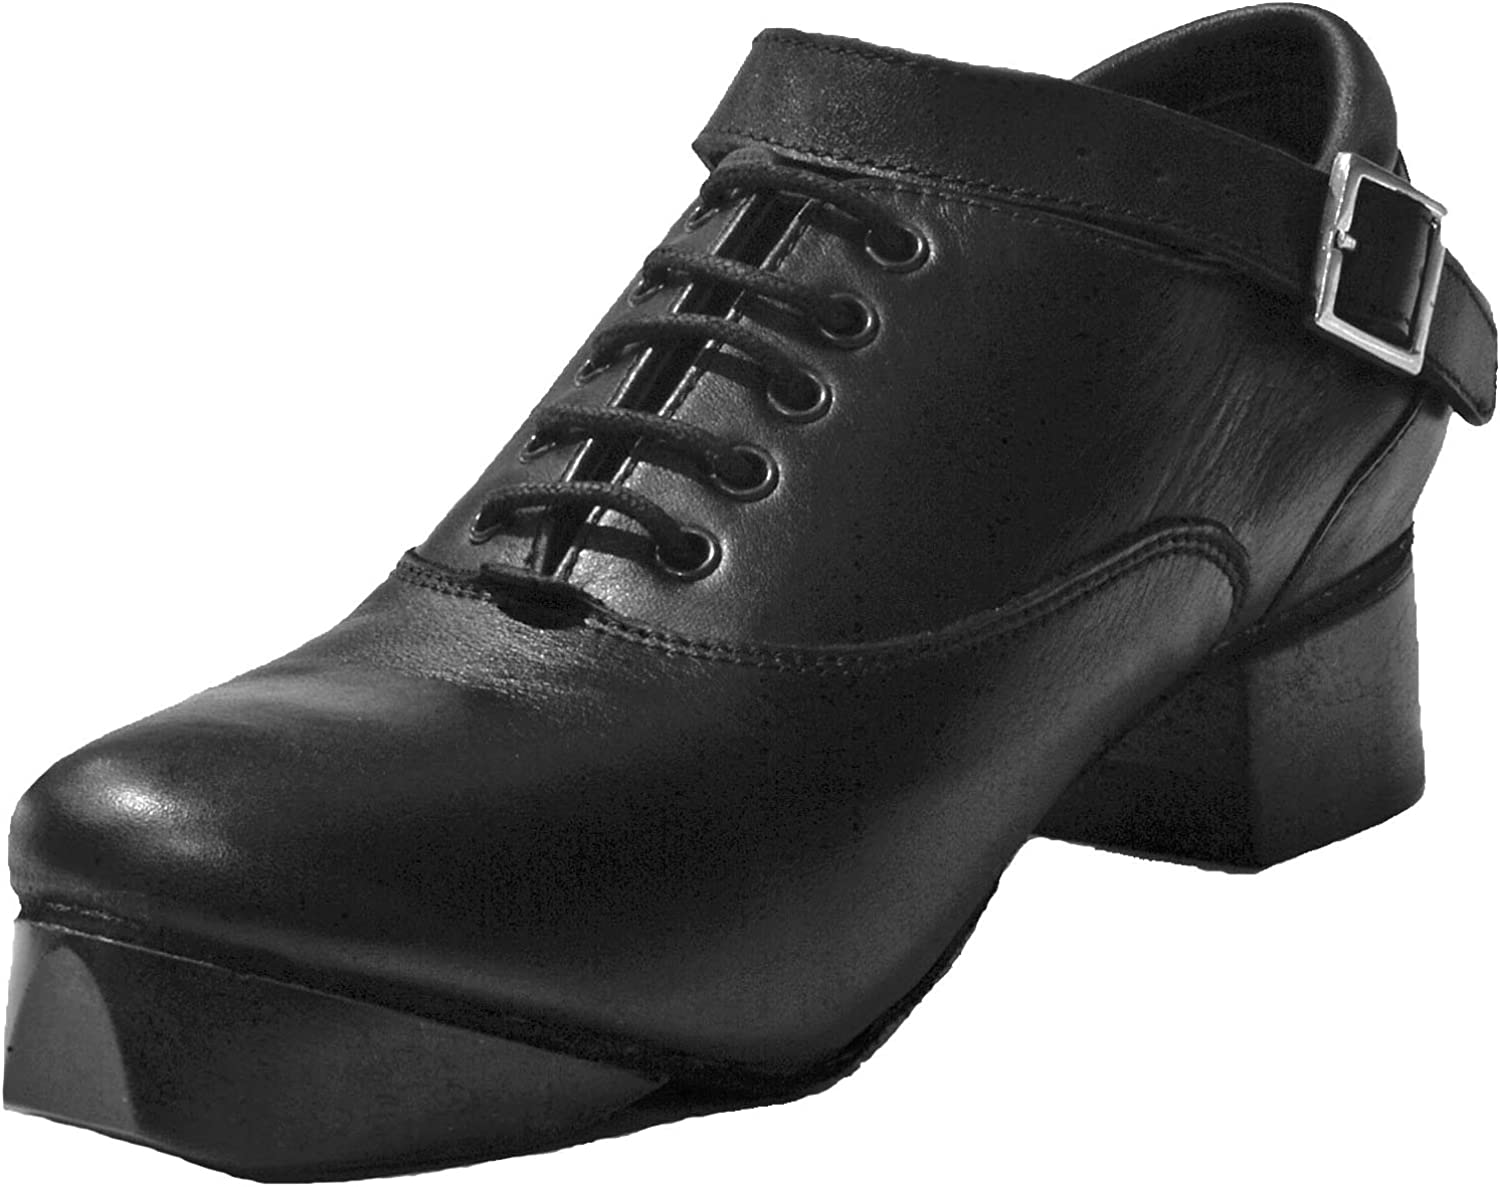 RYAN AND ODONNELL Max 69% OFF OFFicial shop Irish Dance Hard Wear Jig Str Shoes Soft Super